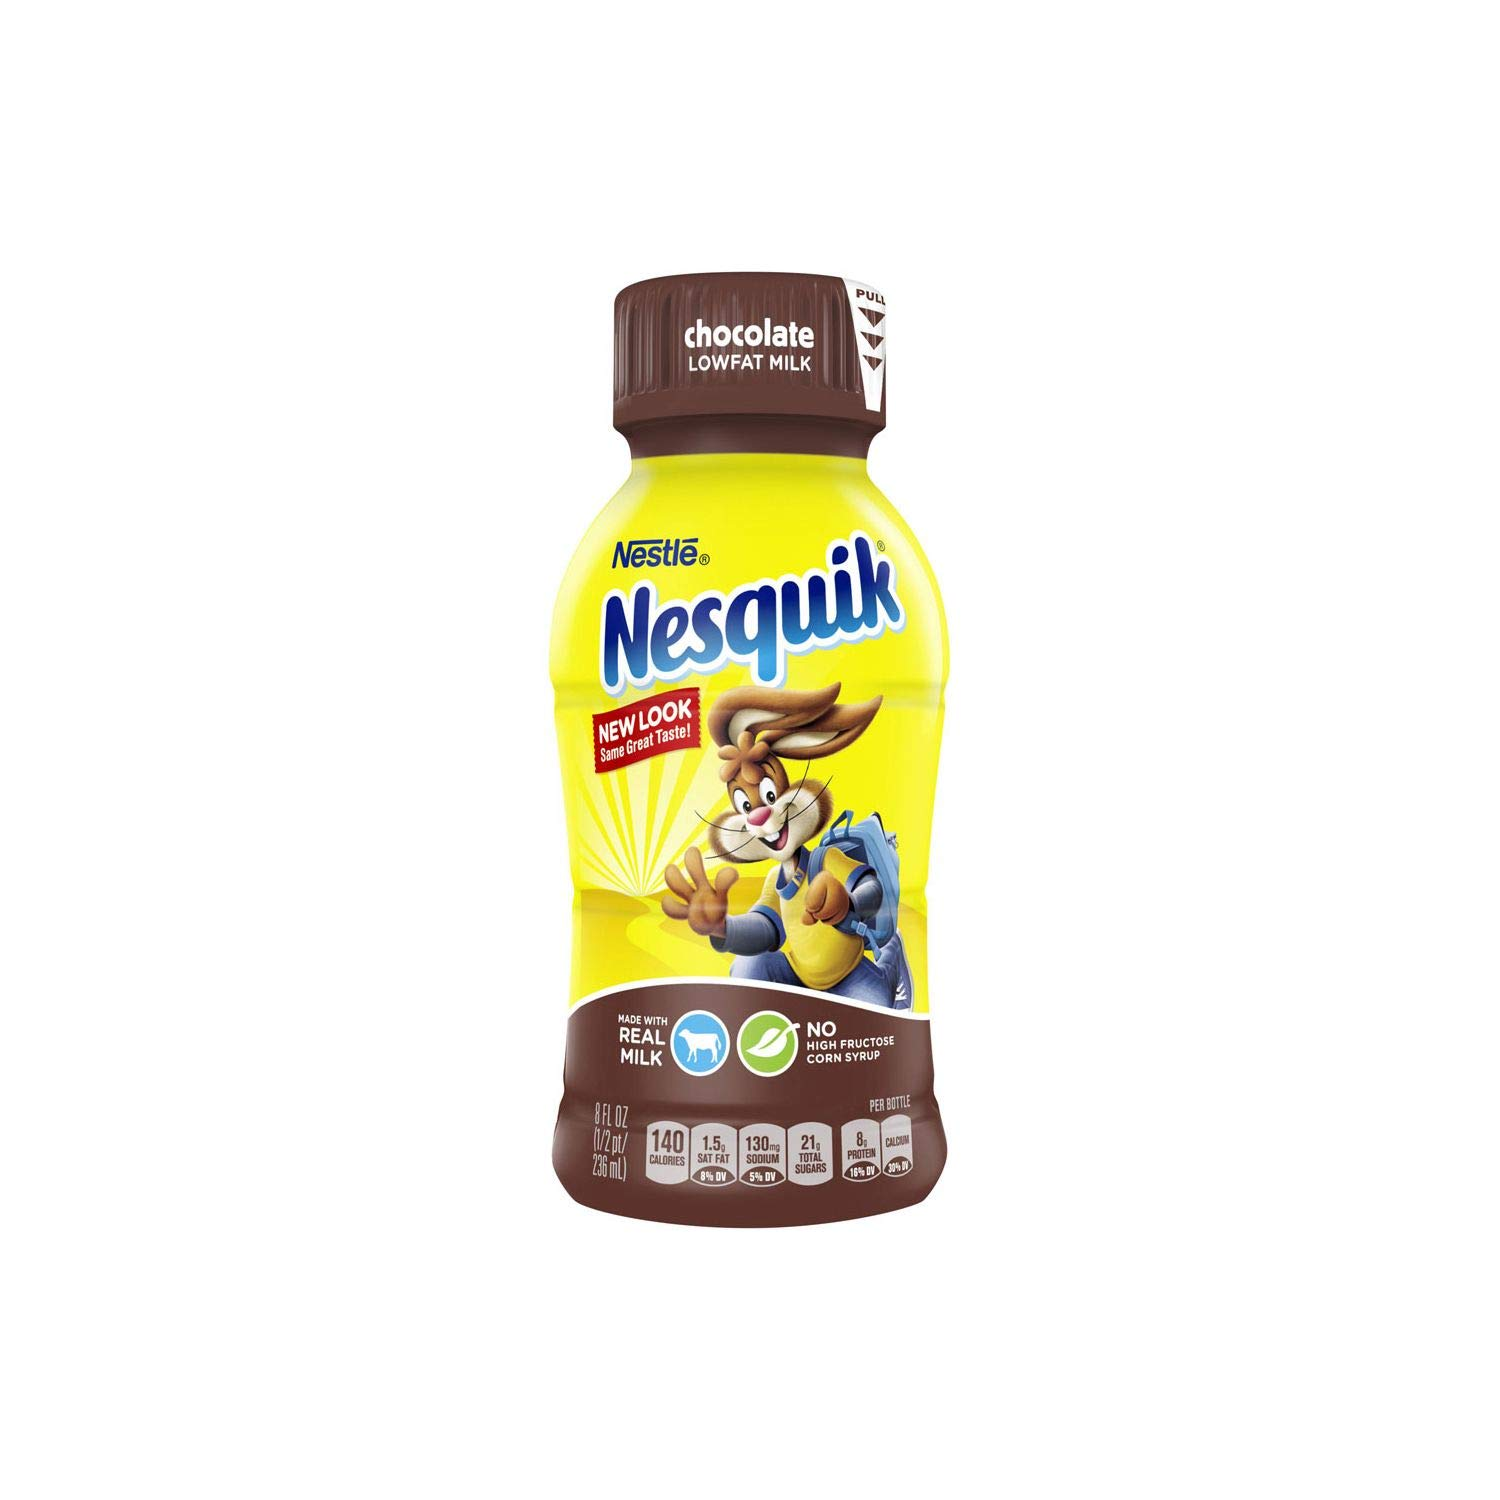 Nestle Nesquik Chocolate Lowfat Milk (8 oz. bottles, 15 pk.) (pack of 2)